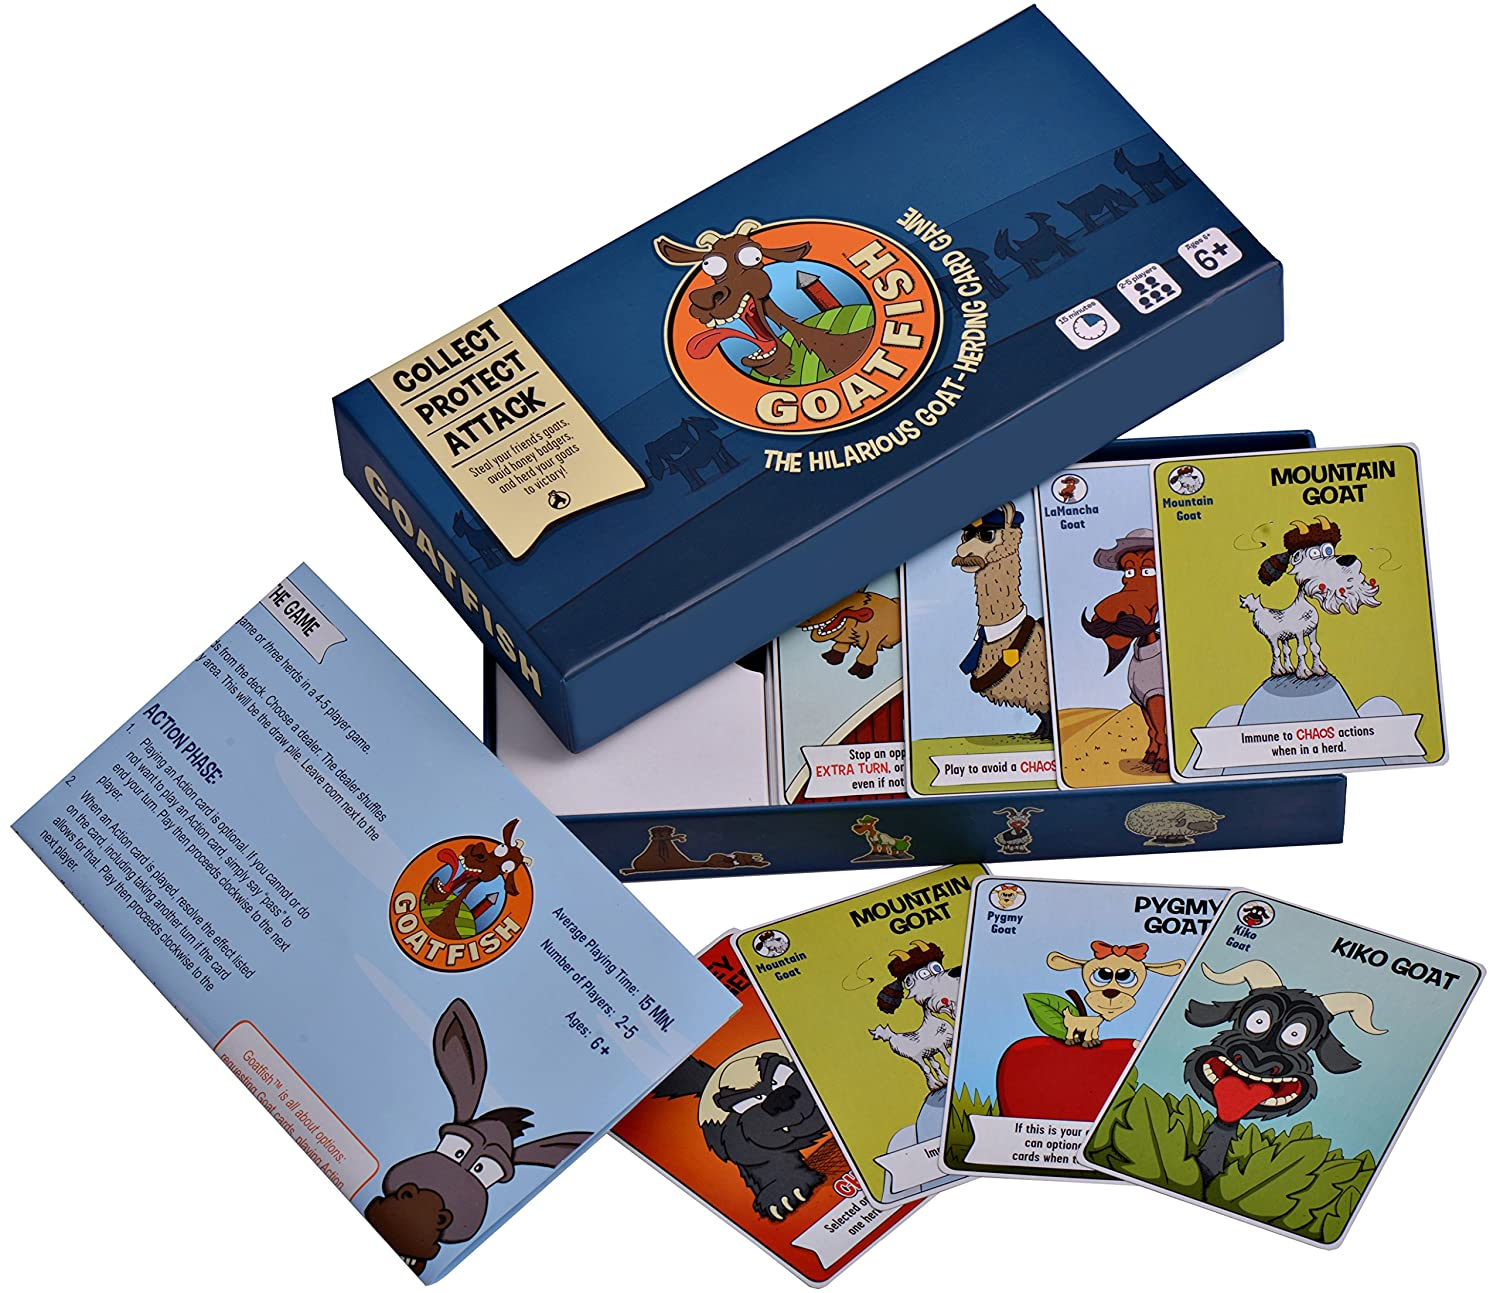 Amazon.com: Goatfish - The Hilarious Goat-Herding Card Game - Party Game  for 2-5 Players, Fun for Adults, Kids and Families: Toys & Games